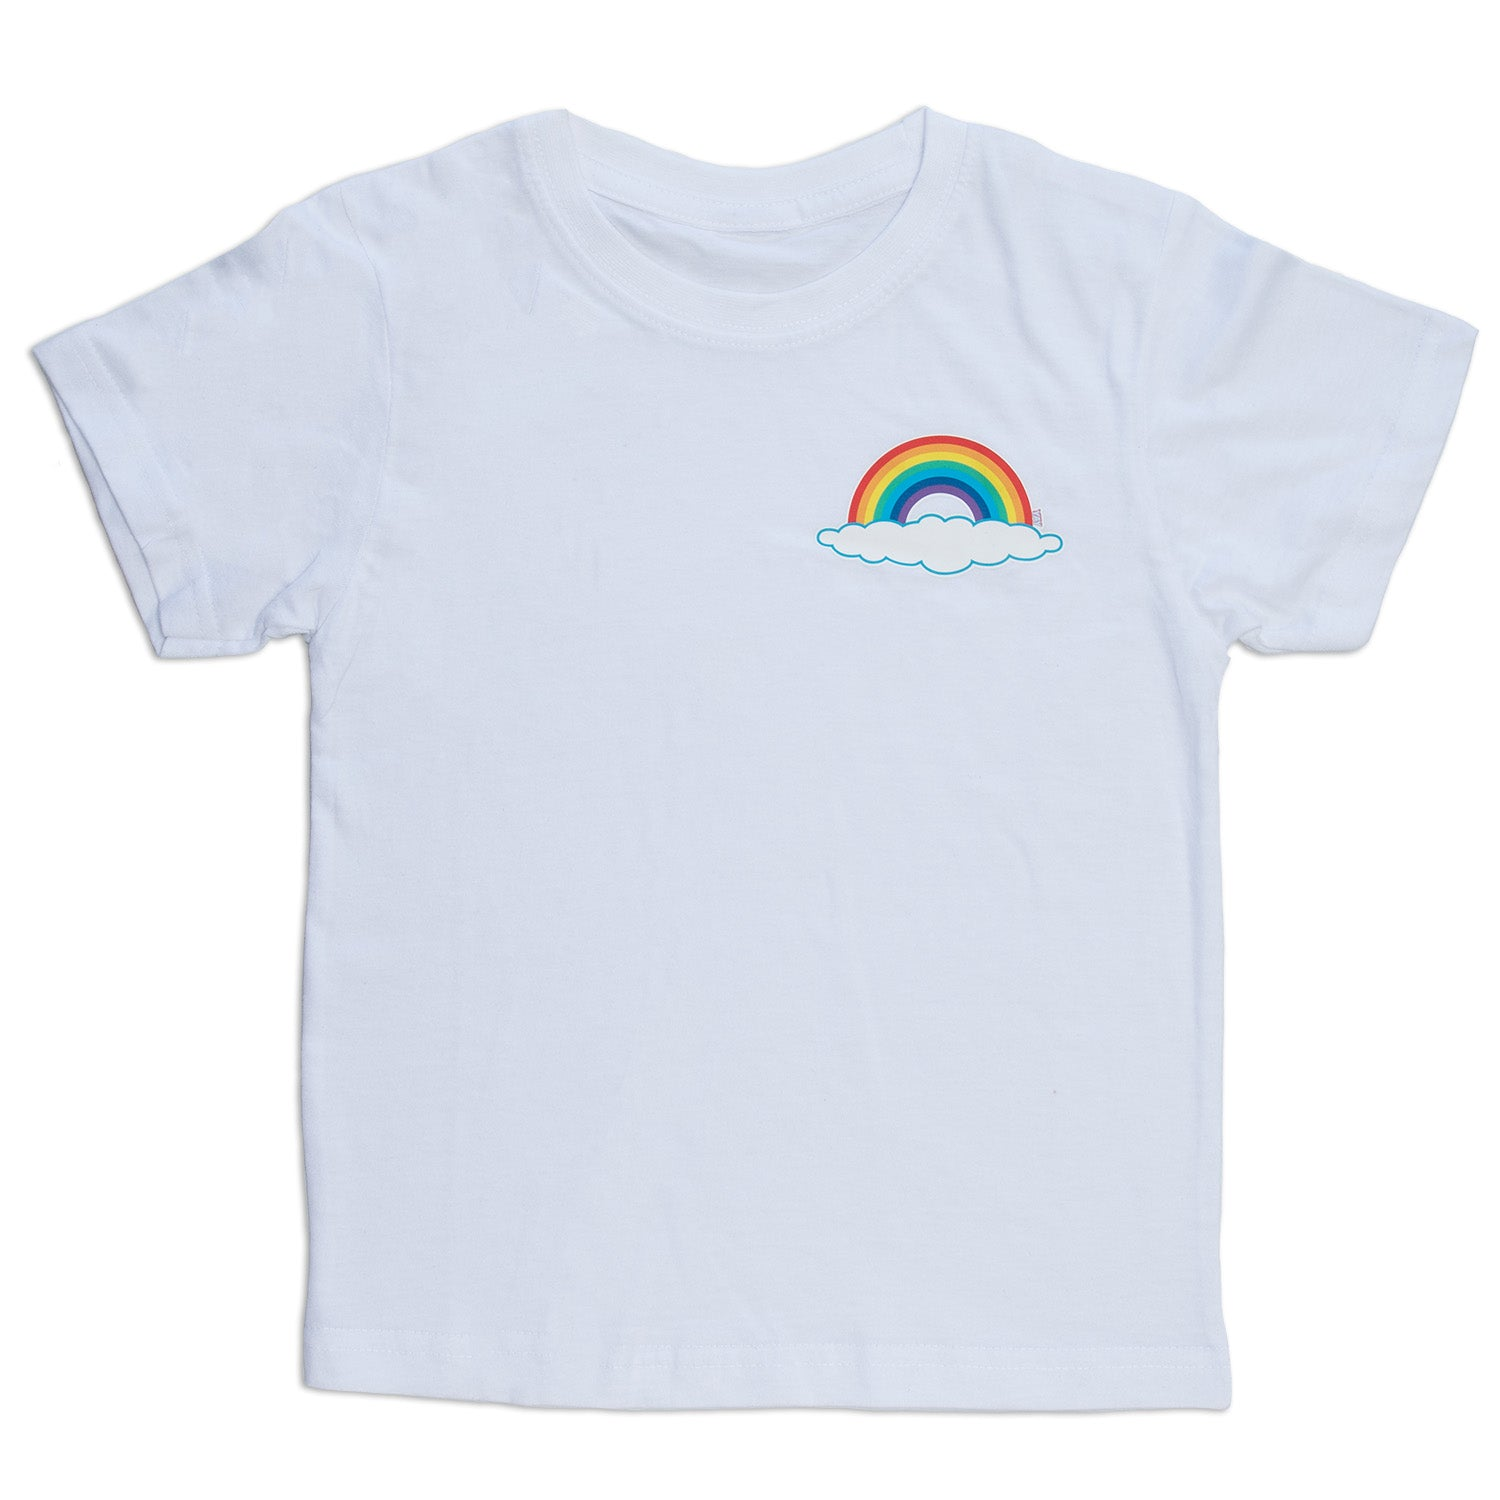 Rainbow Club Tees